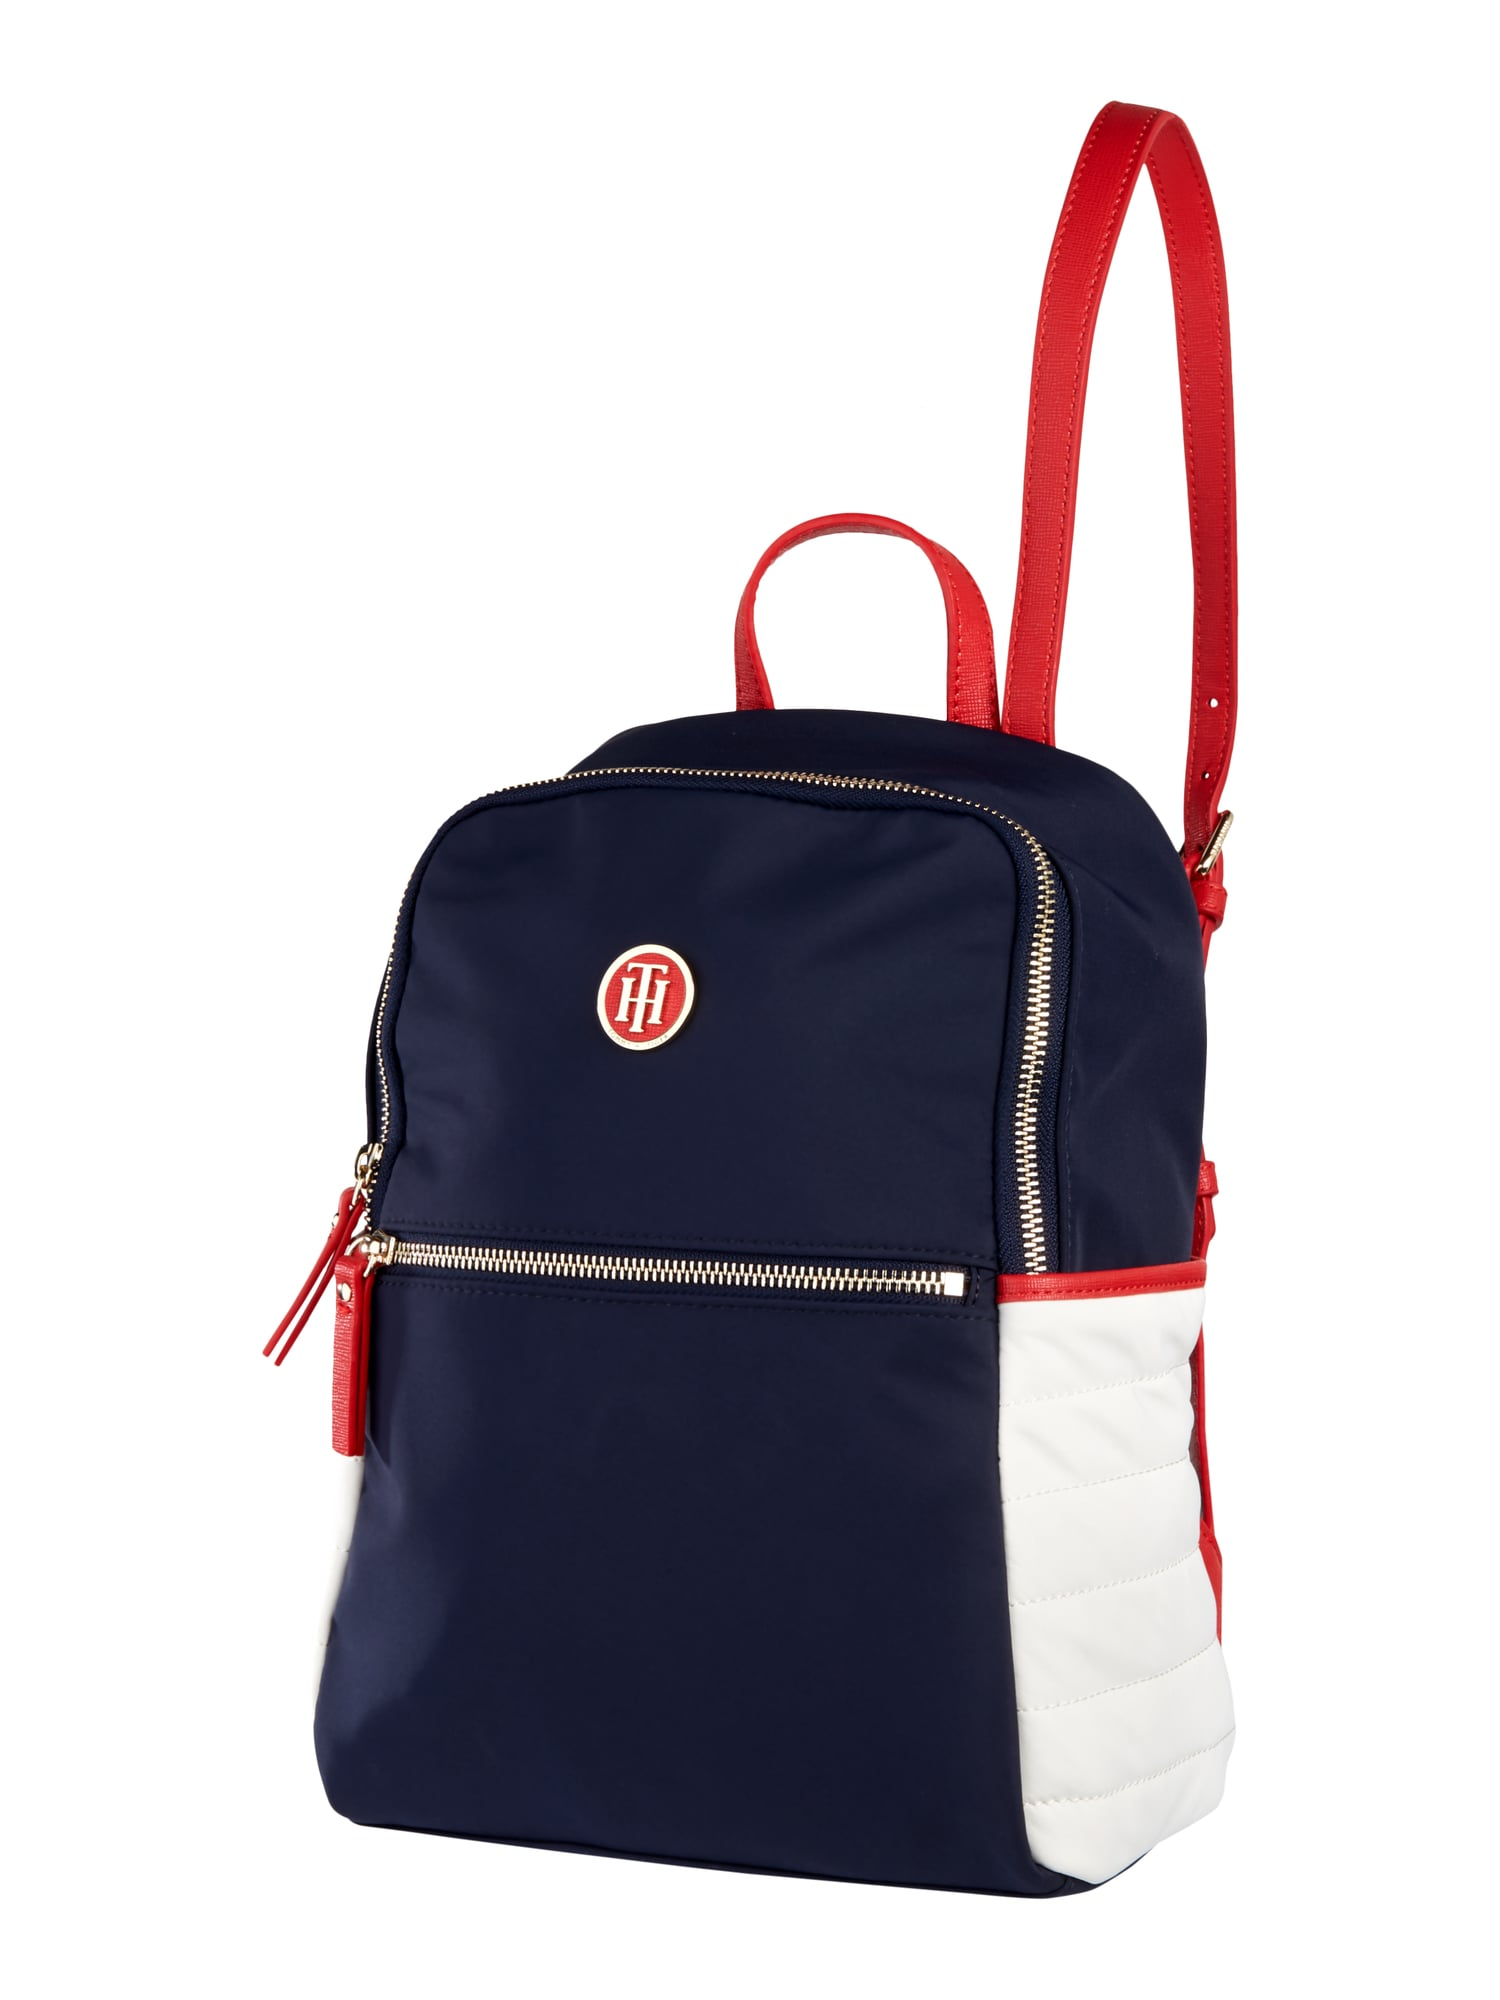 tommy hilfiger rucksack mit frontfach in blau t rkis. Black Bedroom Furniture Sets. Home Design Ideas